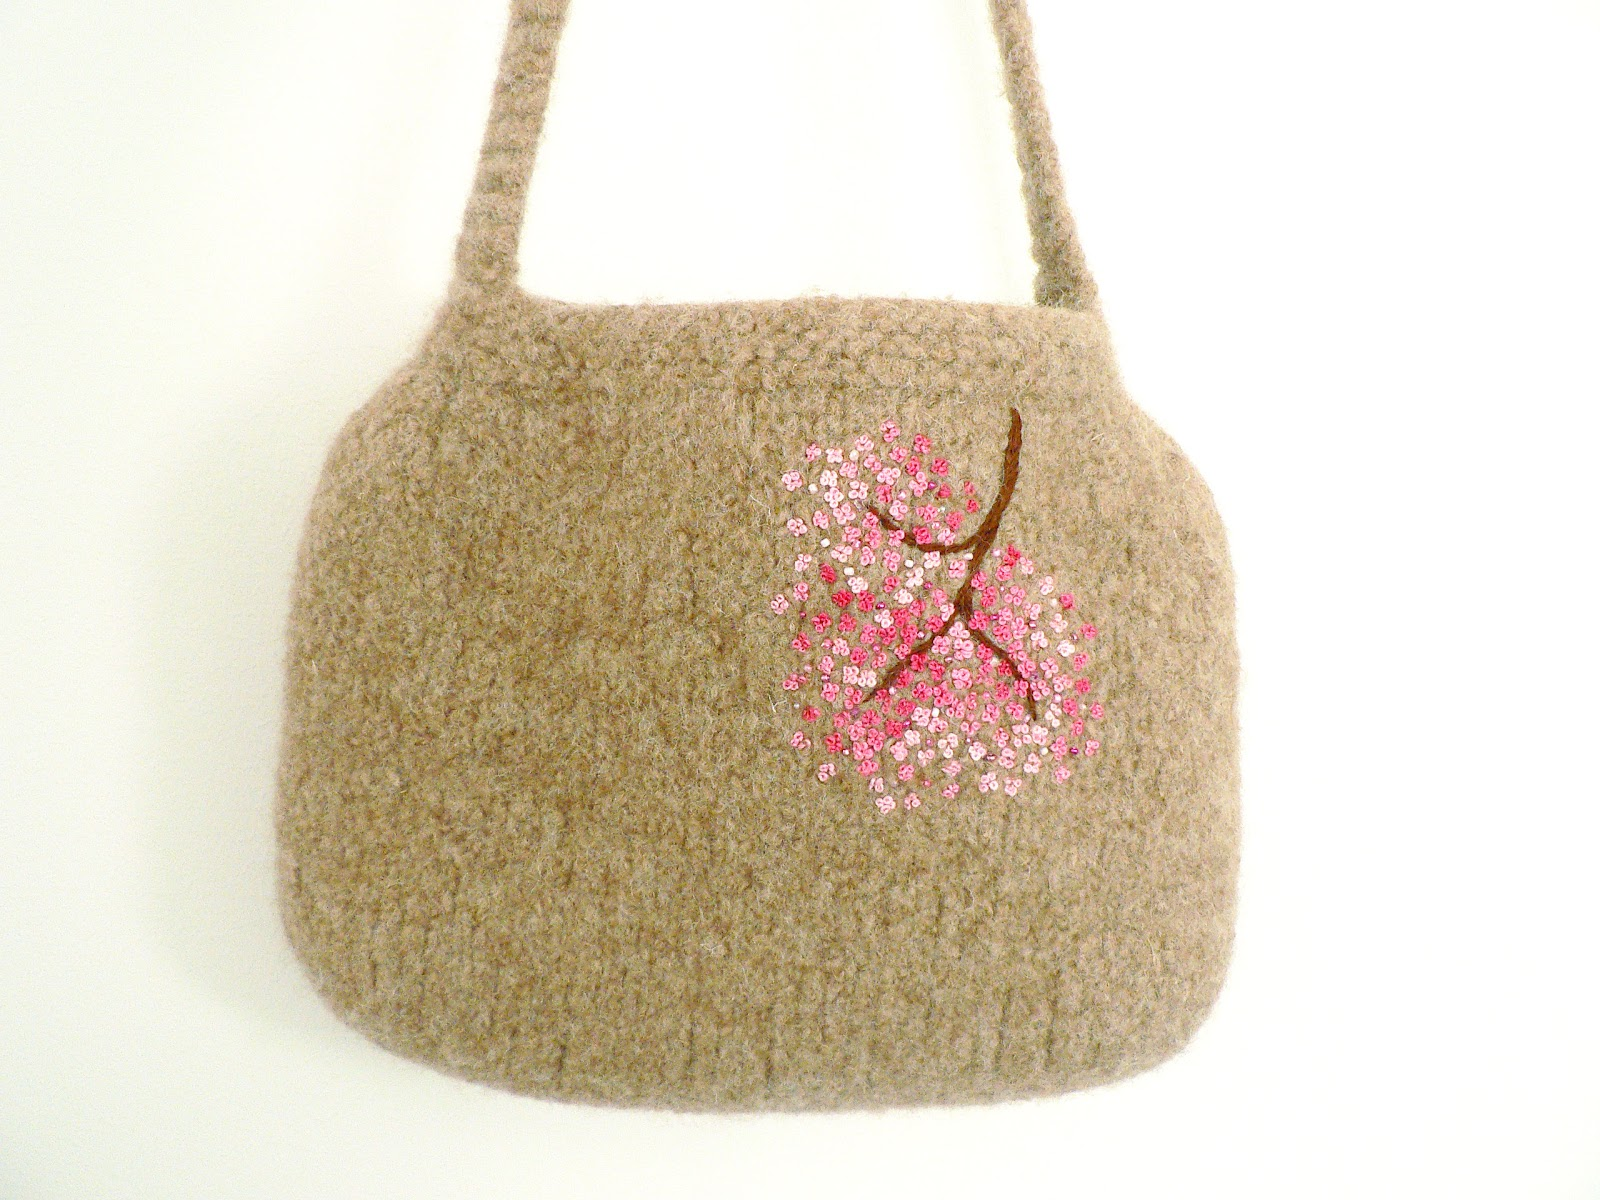 Knitting Bag : Knit n Pearl: Beige Knitted Felted Bag with Cherry Blossoms